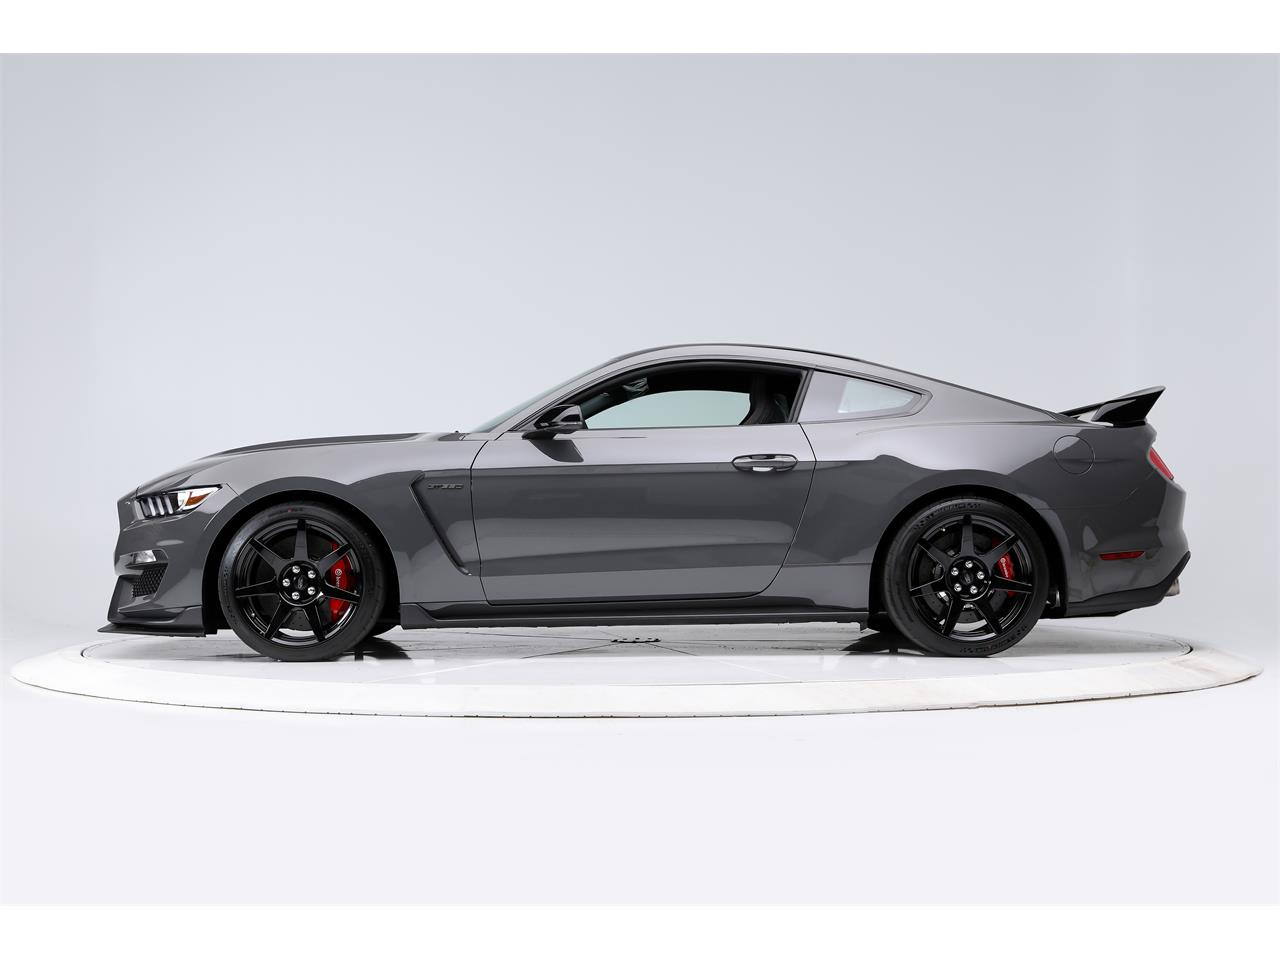 For sale 2018 ford mustang gt350 in scottsdale arizona